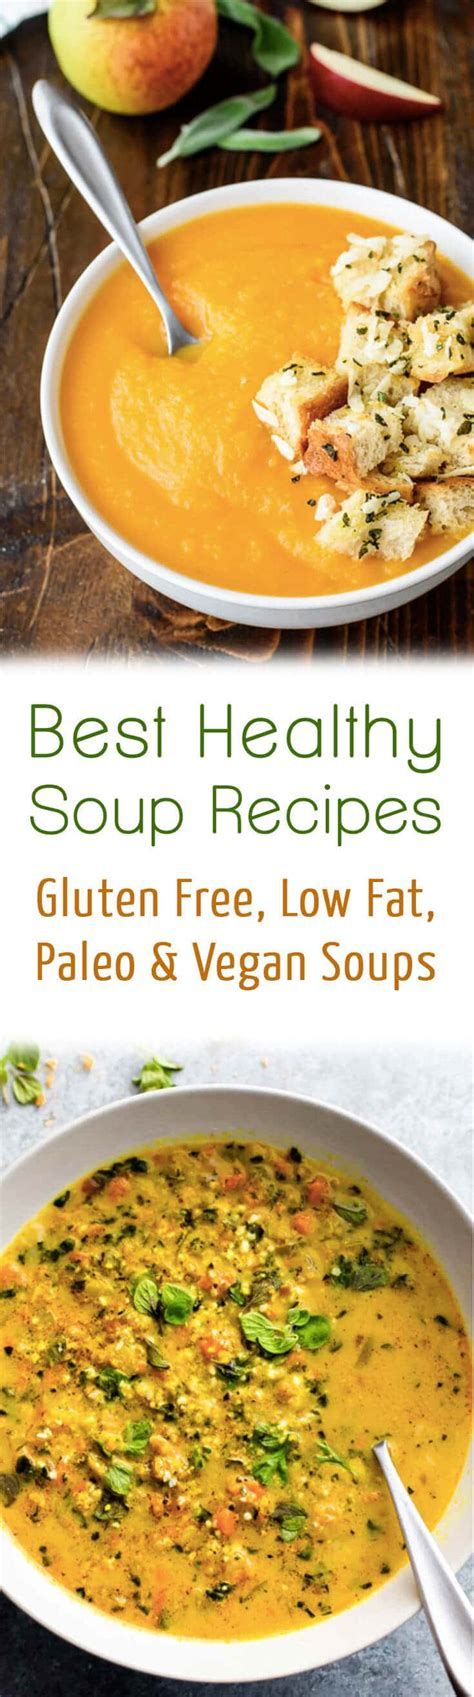 10 best healthy soup recipes gluten free low fat paleo vegan soups10 best healthy soup